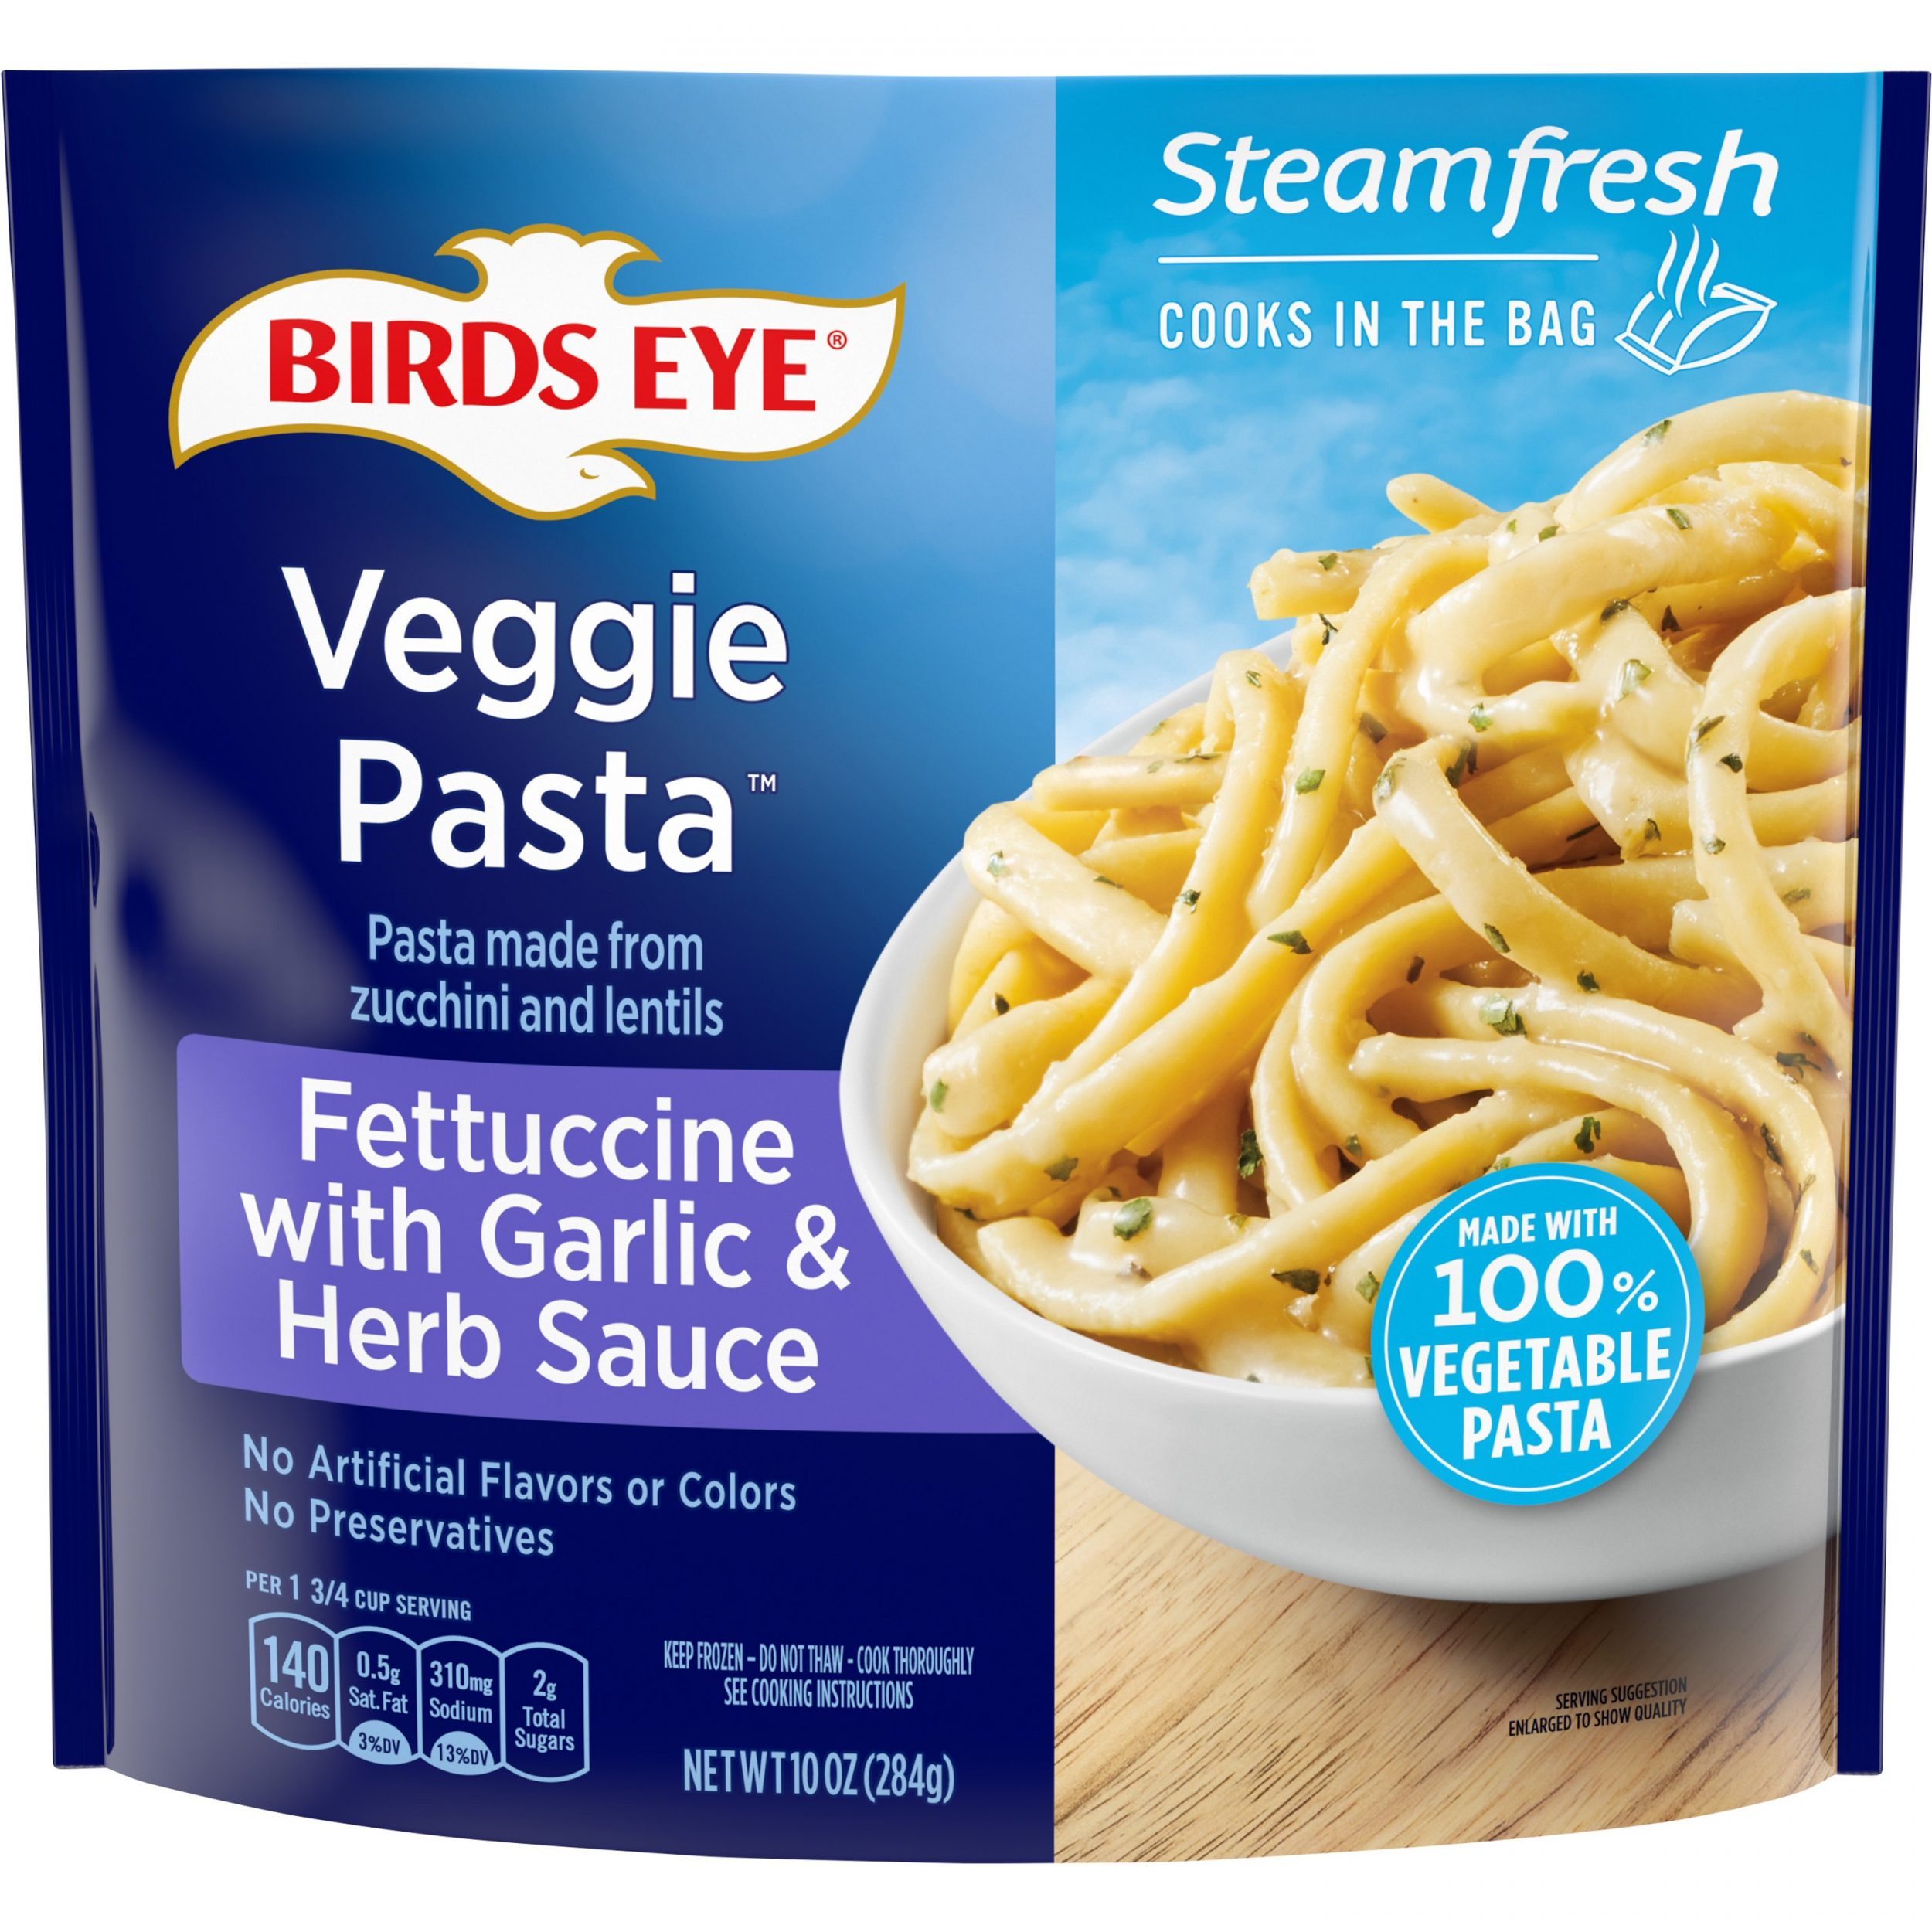 Birds Eye Steamfresh Veggie Made™ Fettuccine With Garlic & Herb Sauce